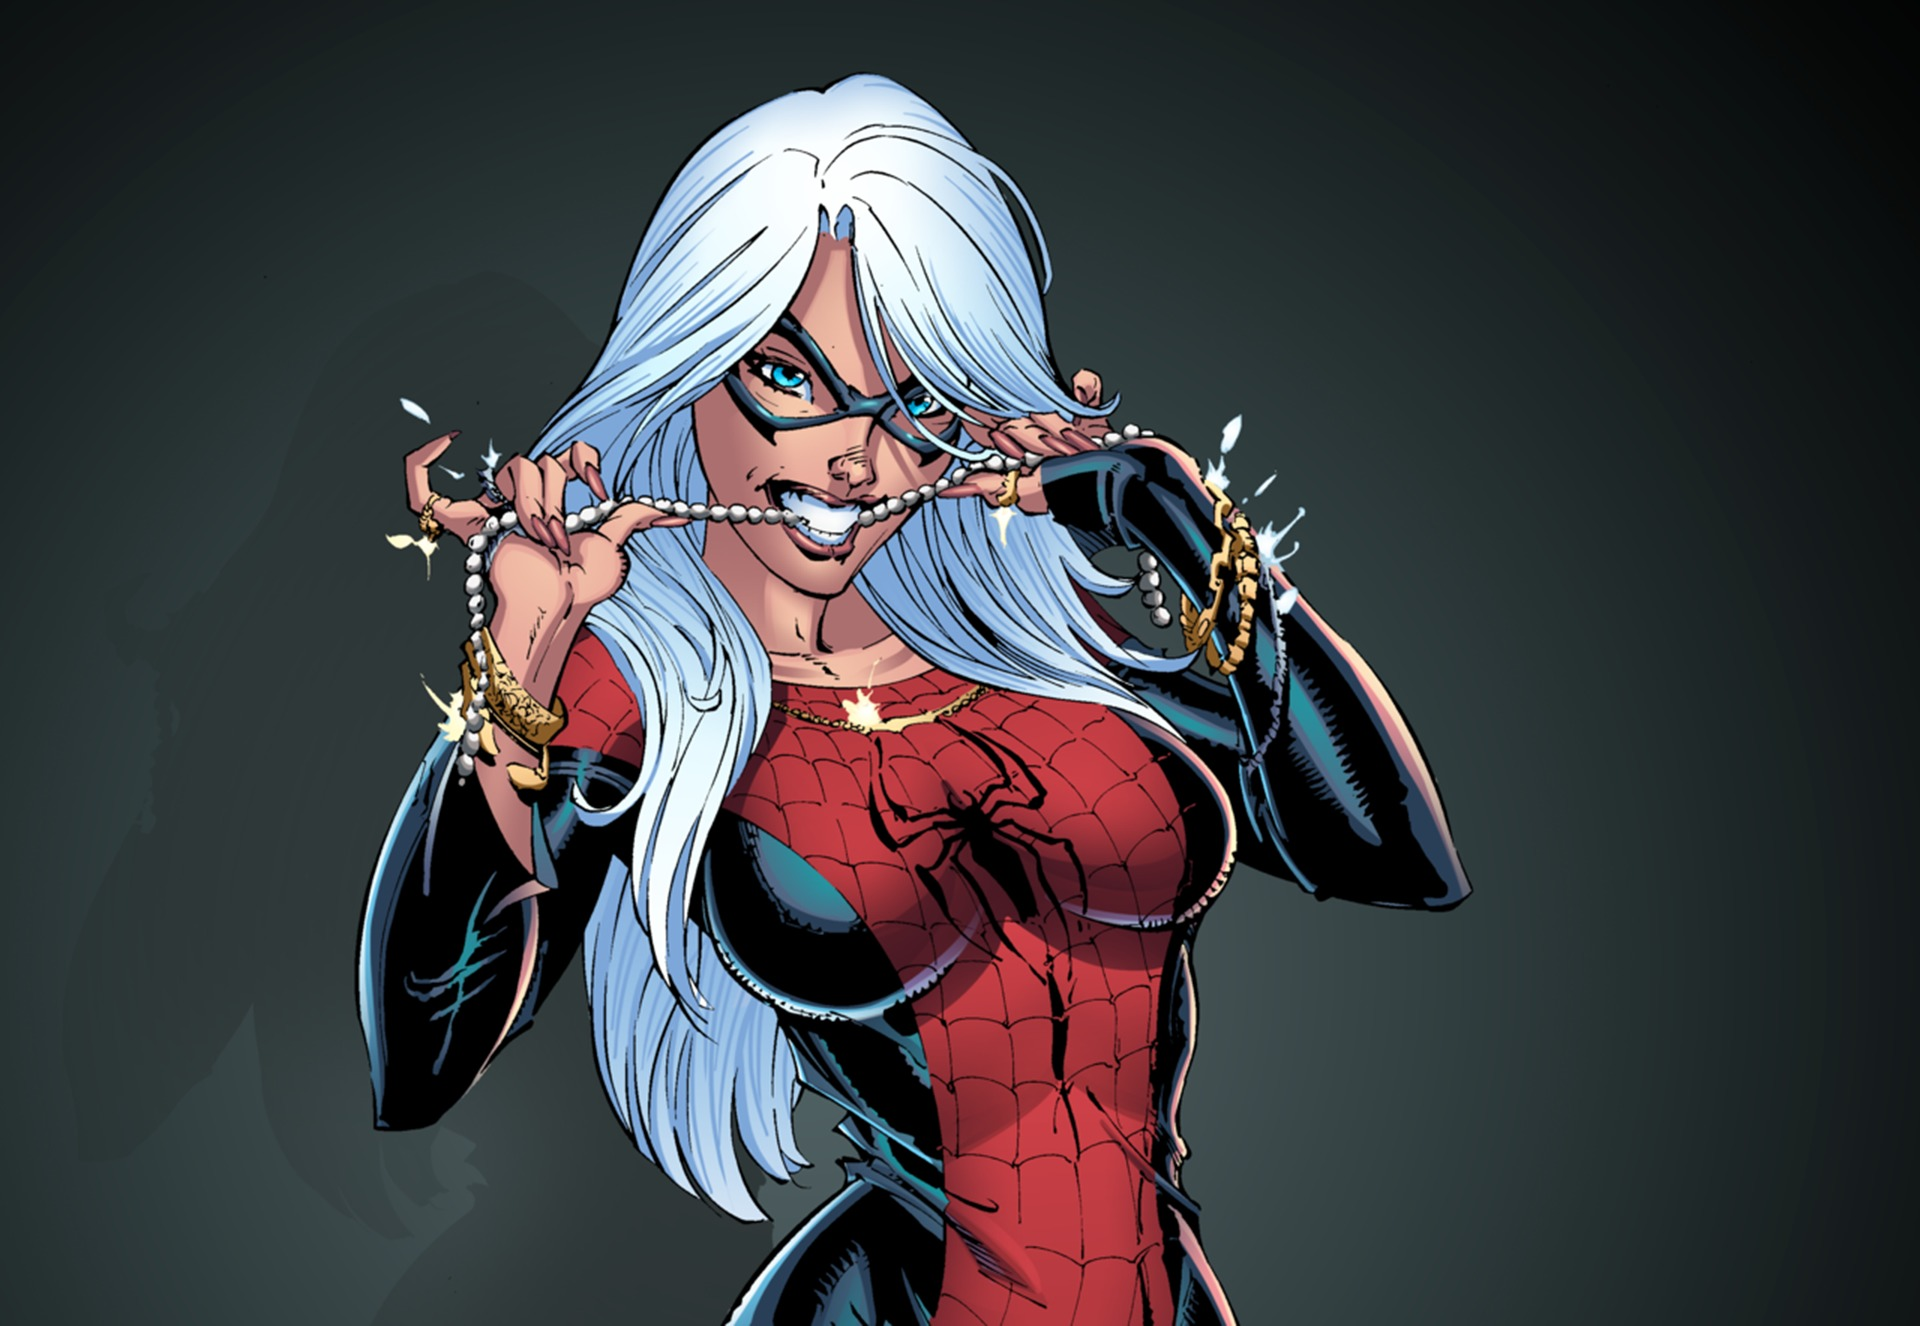 ... wallpaper save it. & Download wallpaper suit Spider-Man Black Cat Felicia Hardy ...